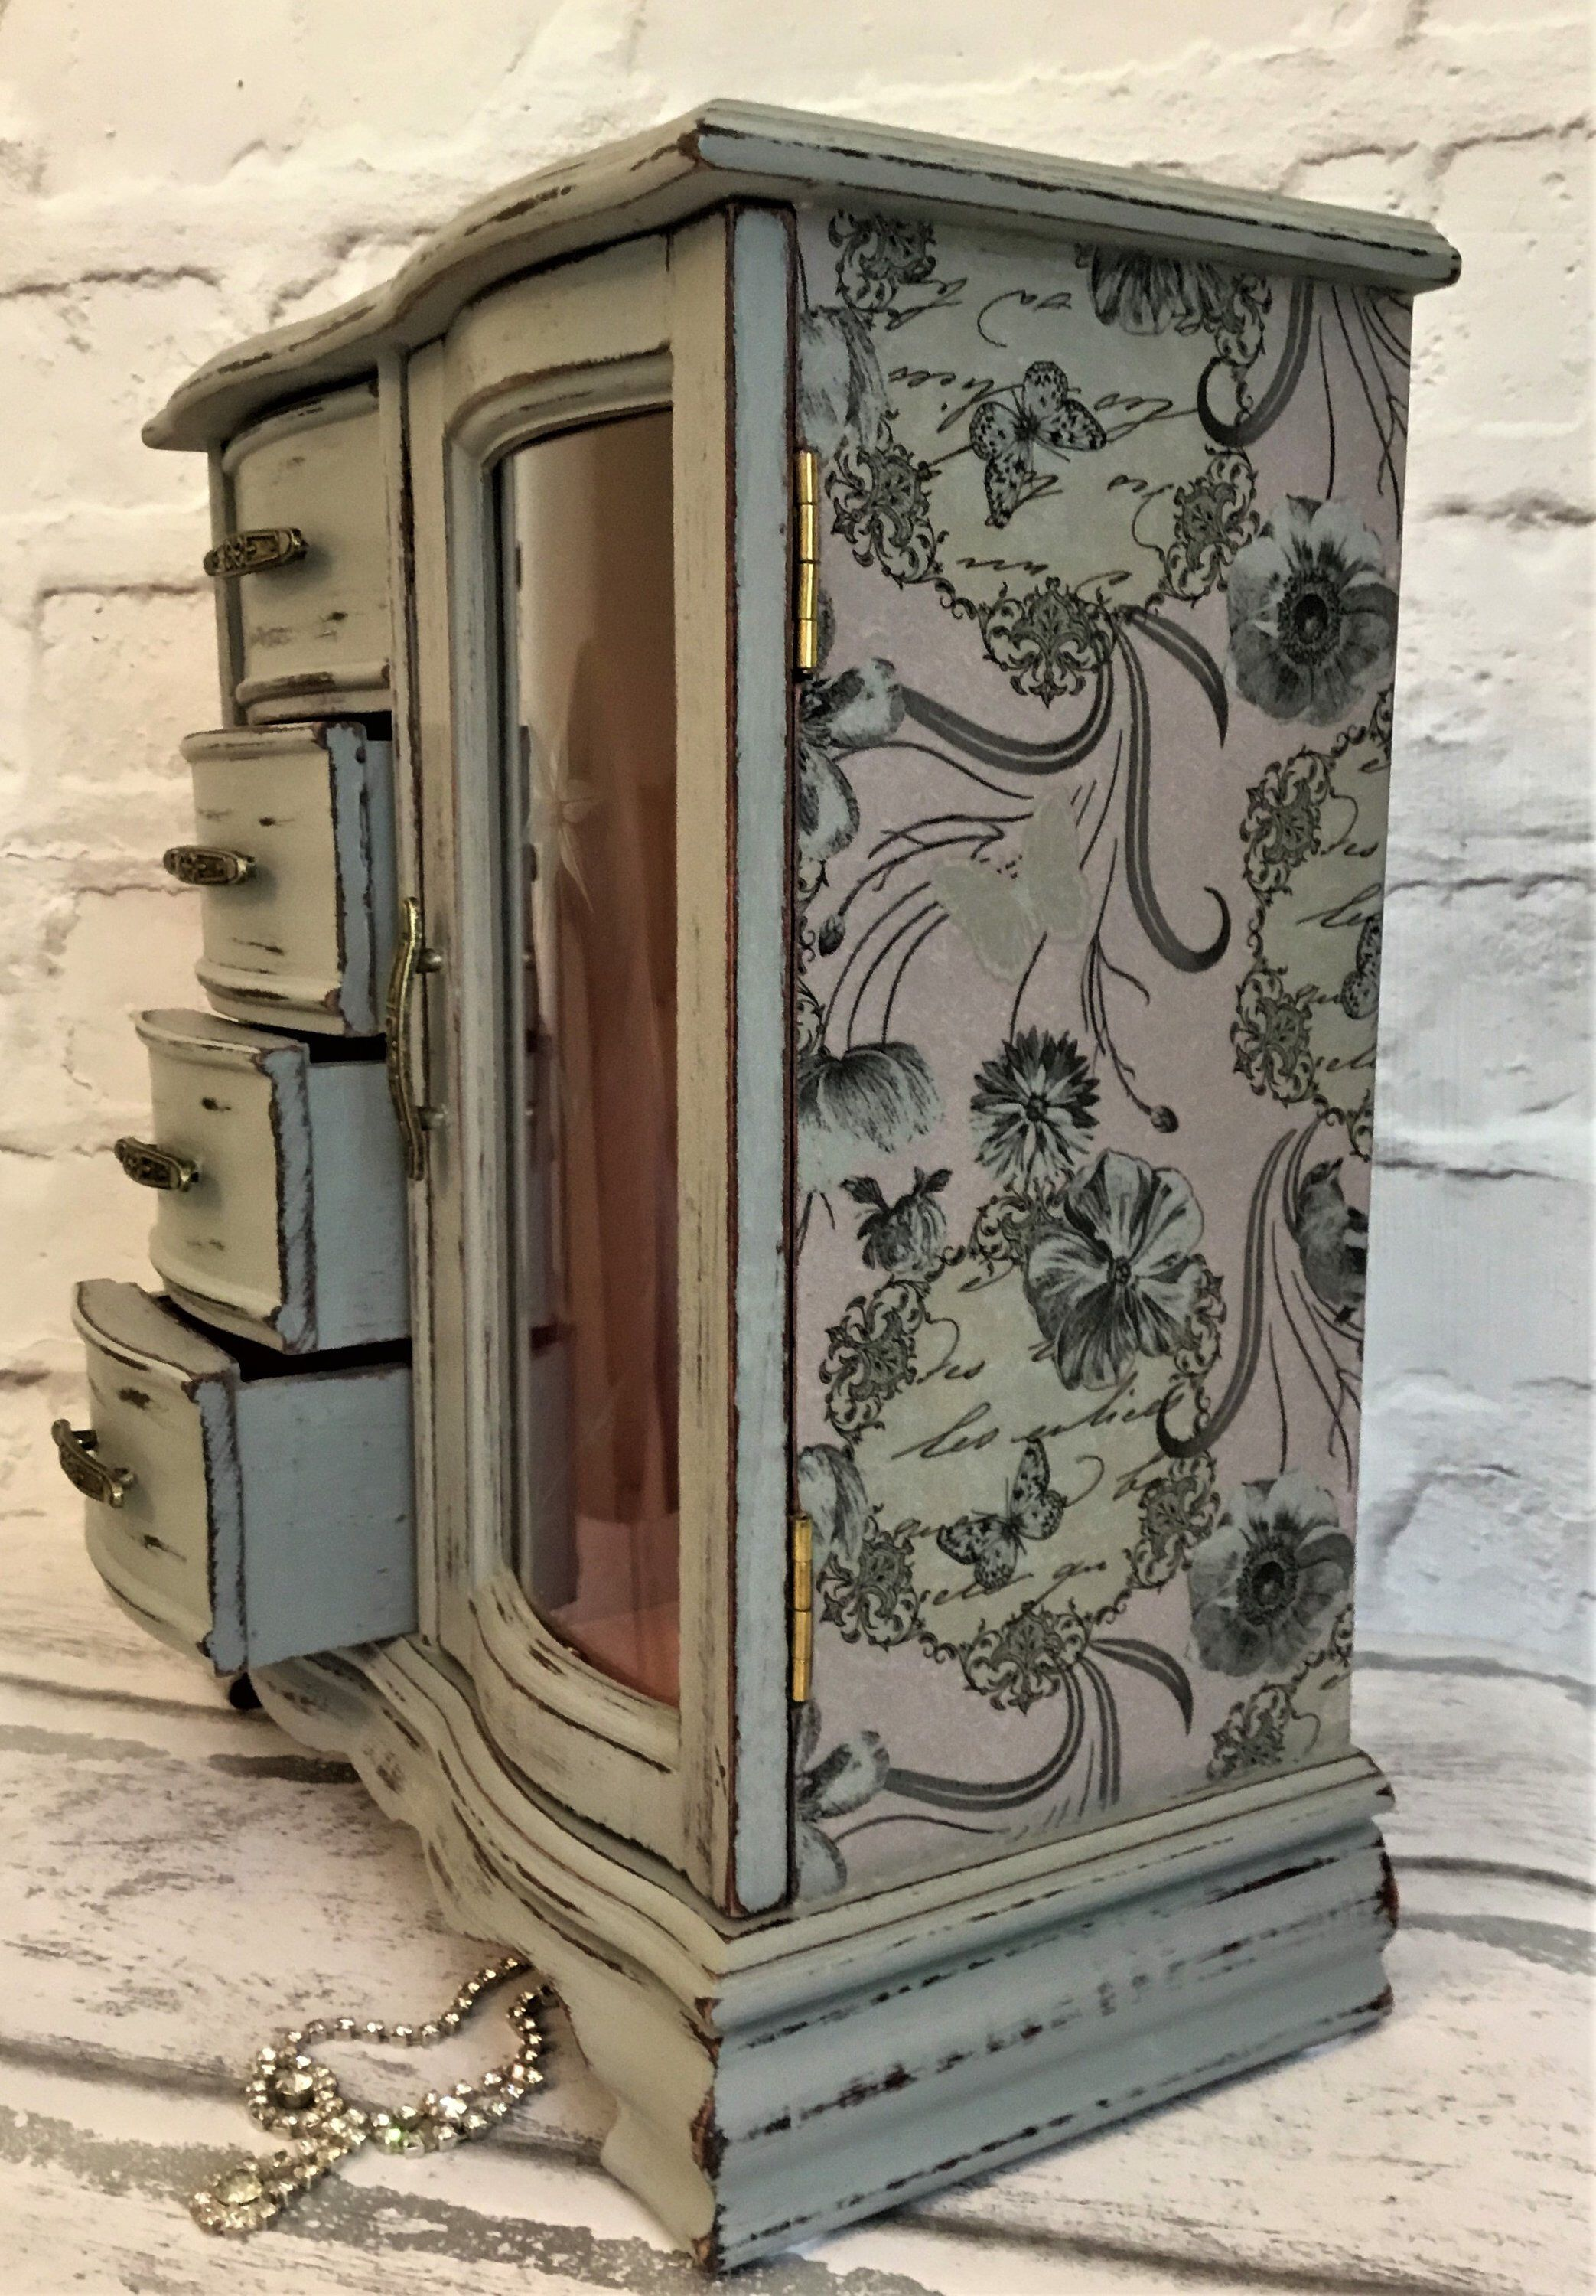 Love The Etched Glass Detail On The Door Of This Jewellery Box... Just